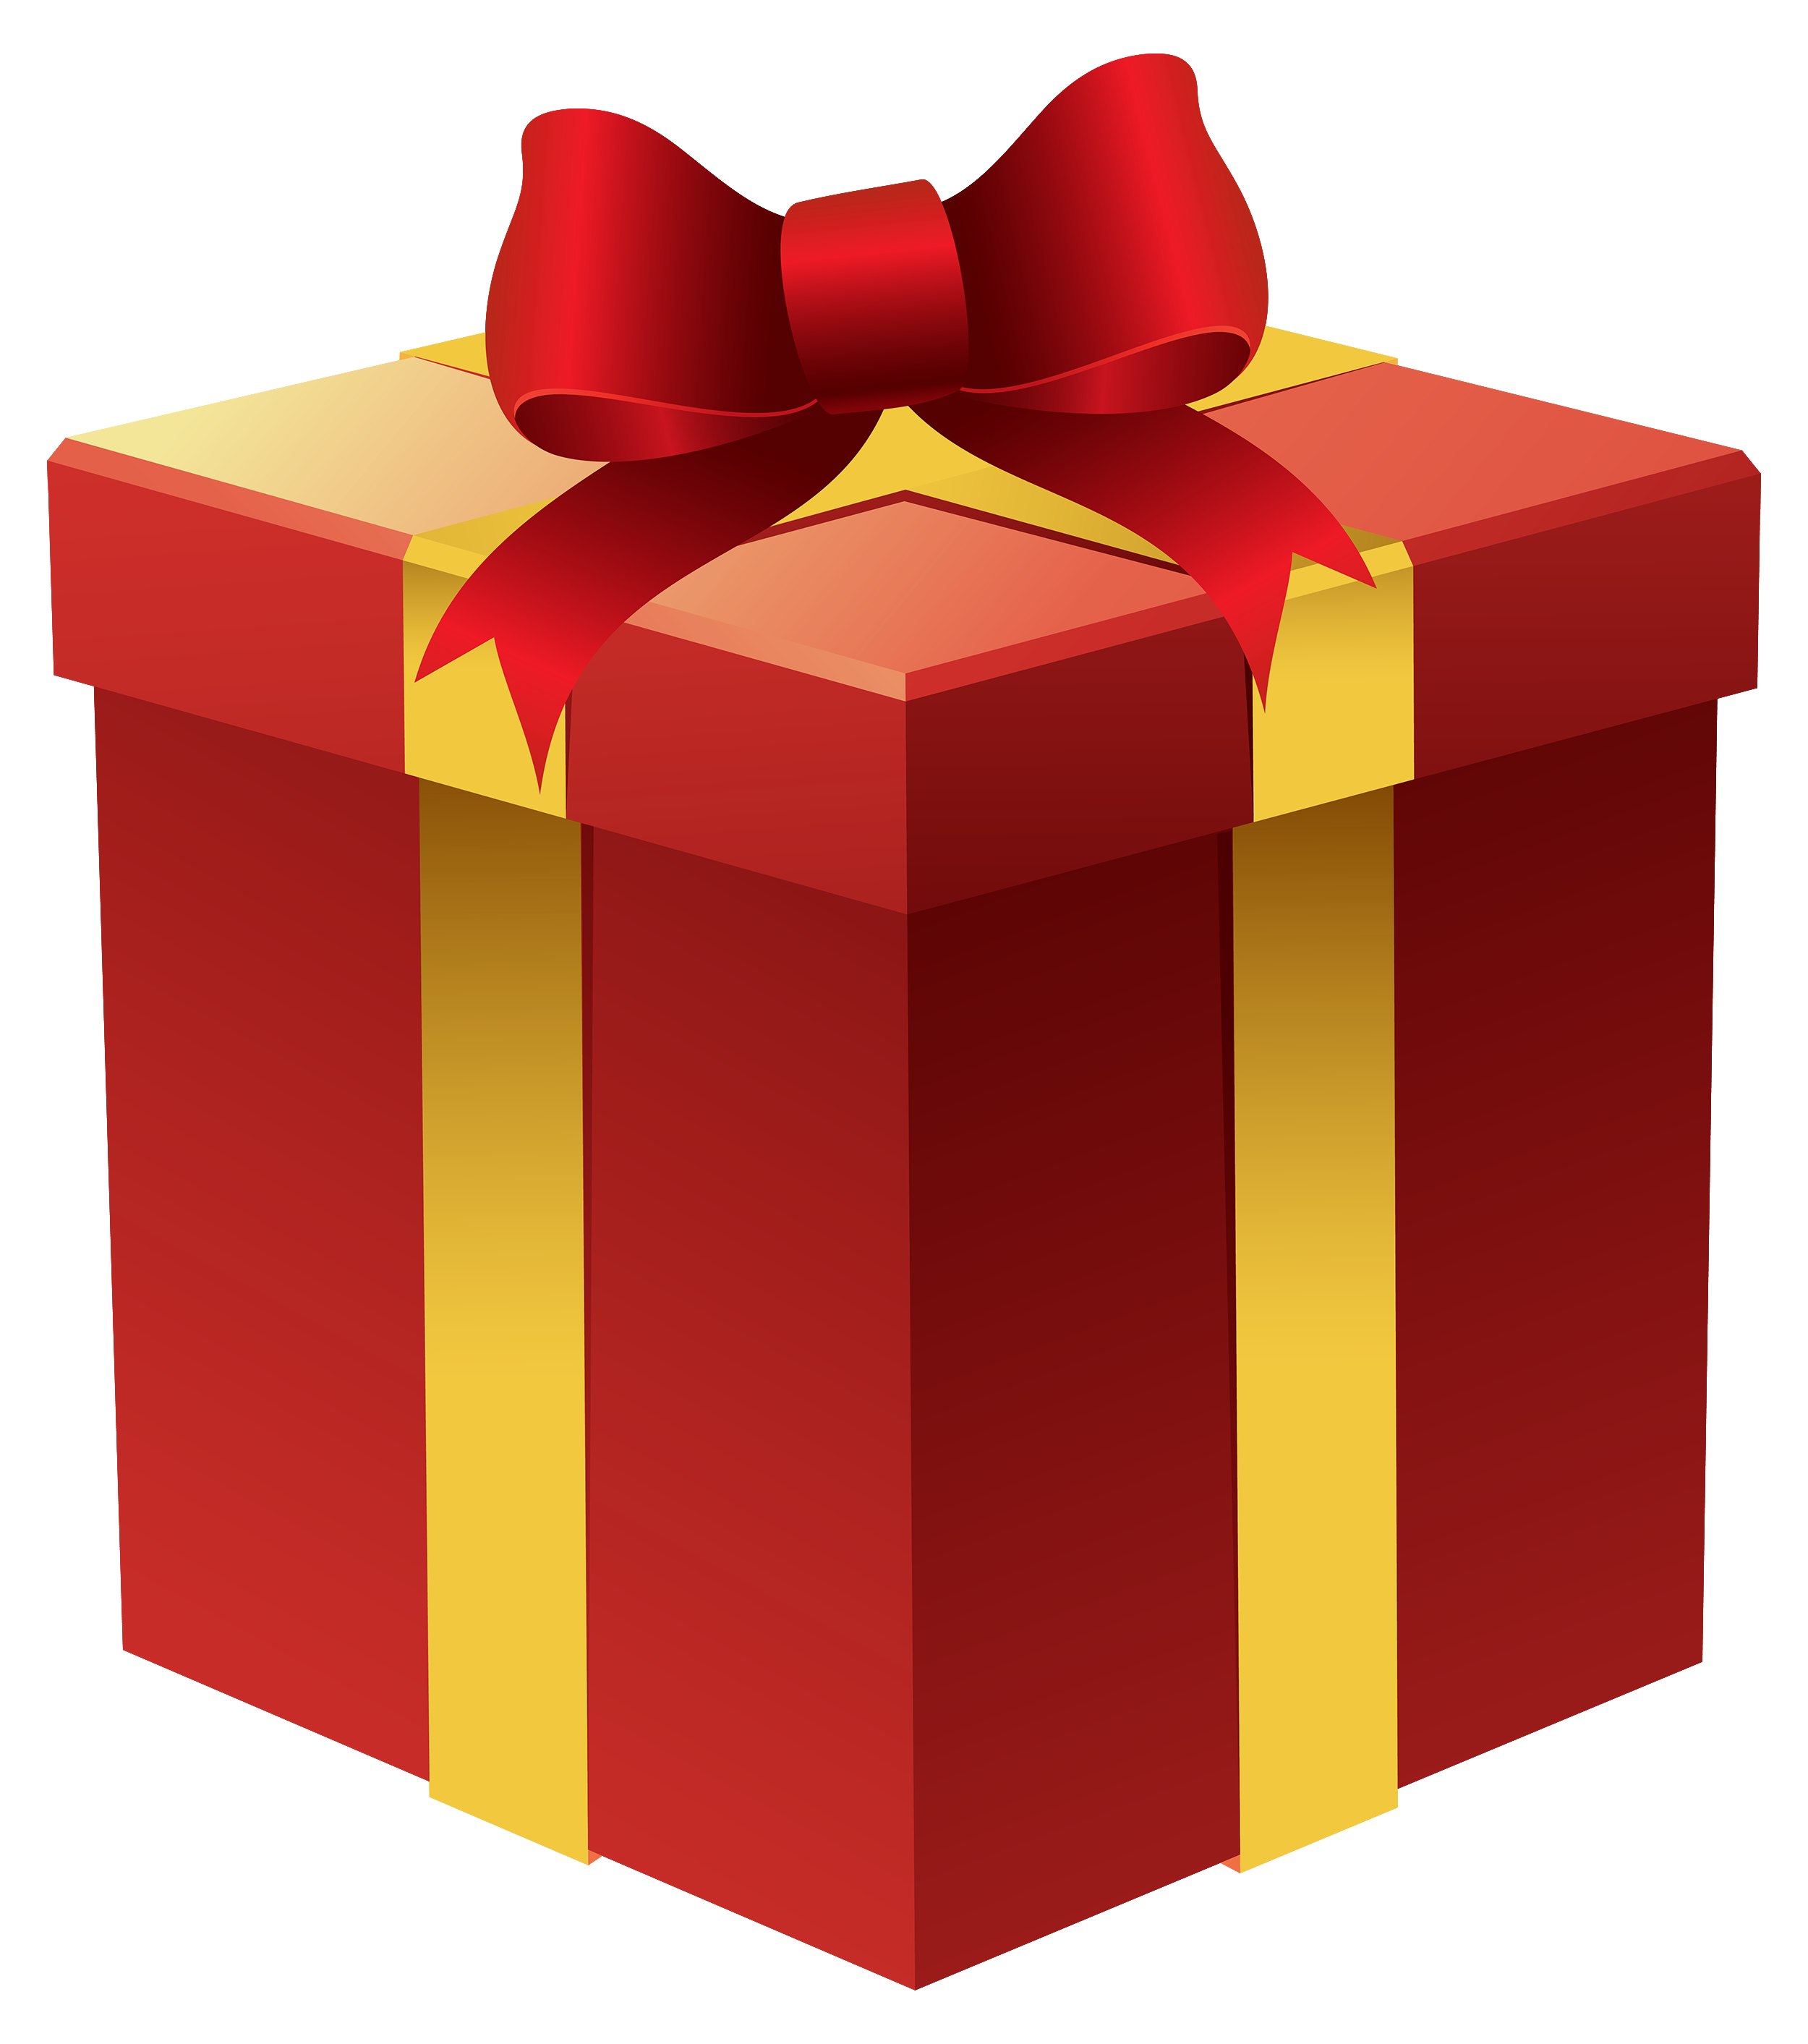 image stock Gifts clipart. Gift box in red.